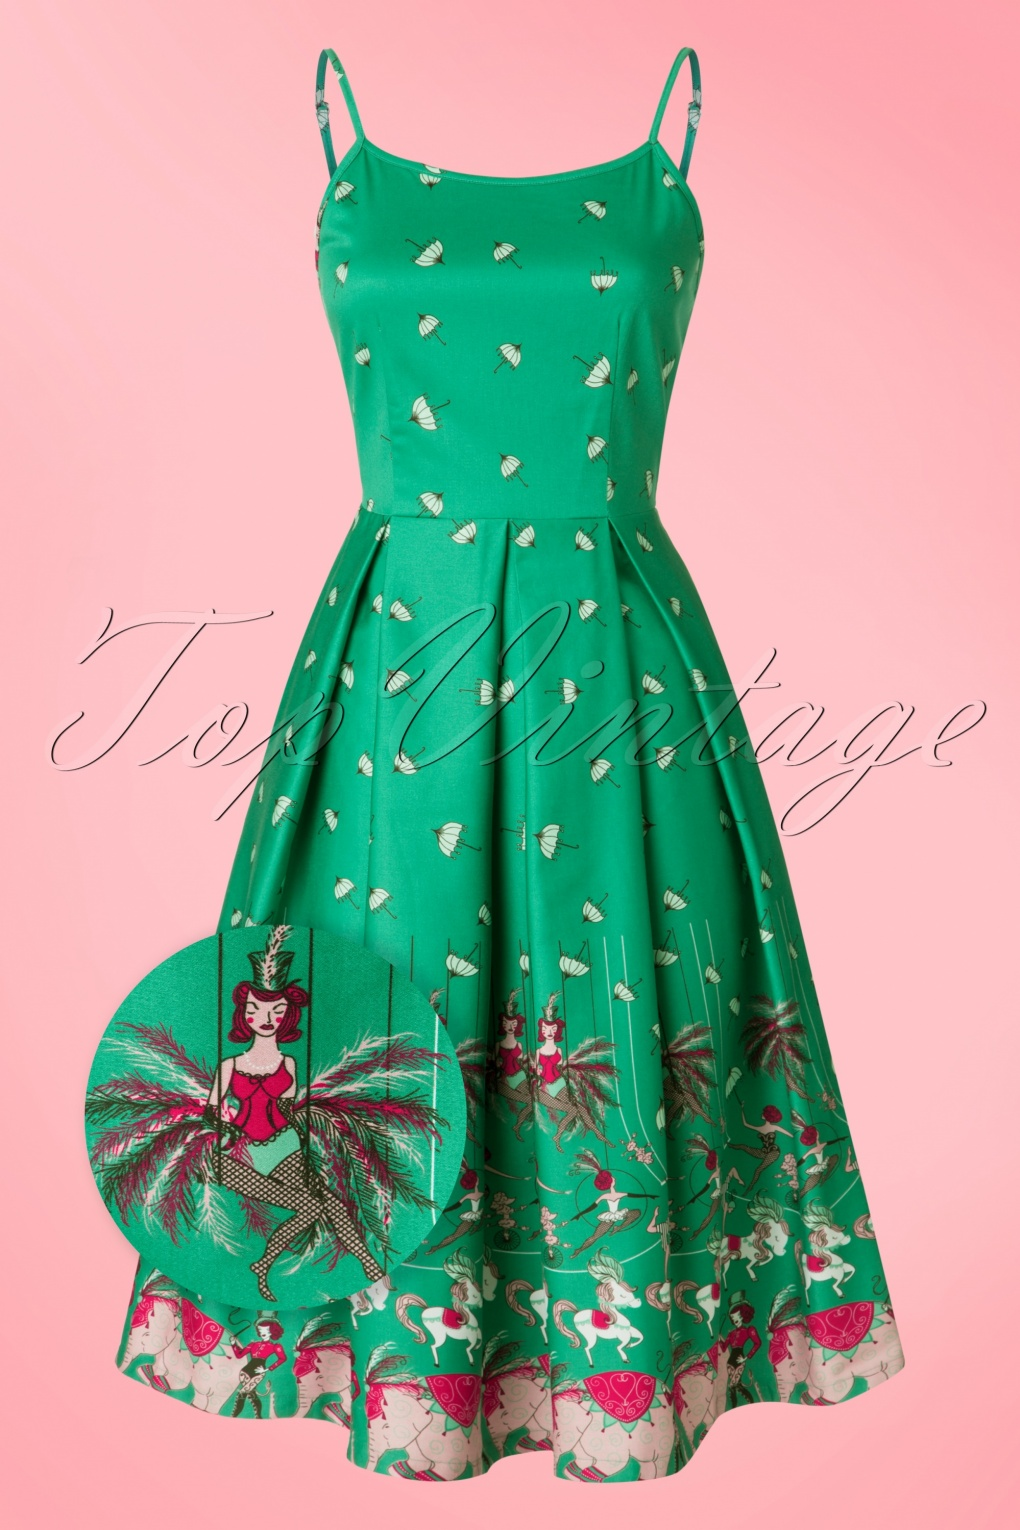 1940s 1950s Pinup Dresses for Sale 50s Evelyn Circus Swing Dress in Green £42.37 AT vintagedancer.com